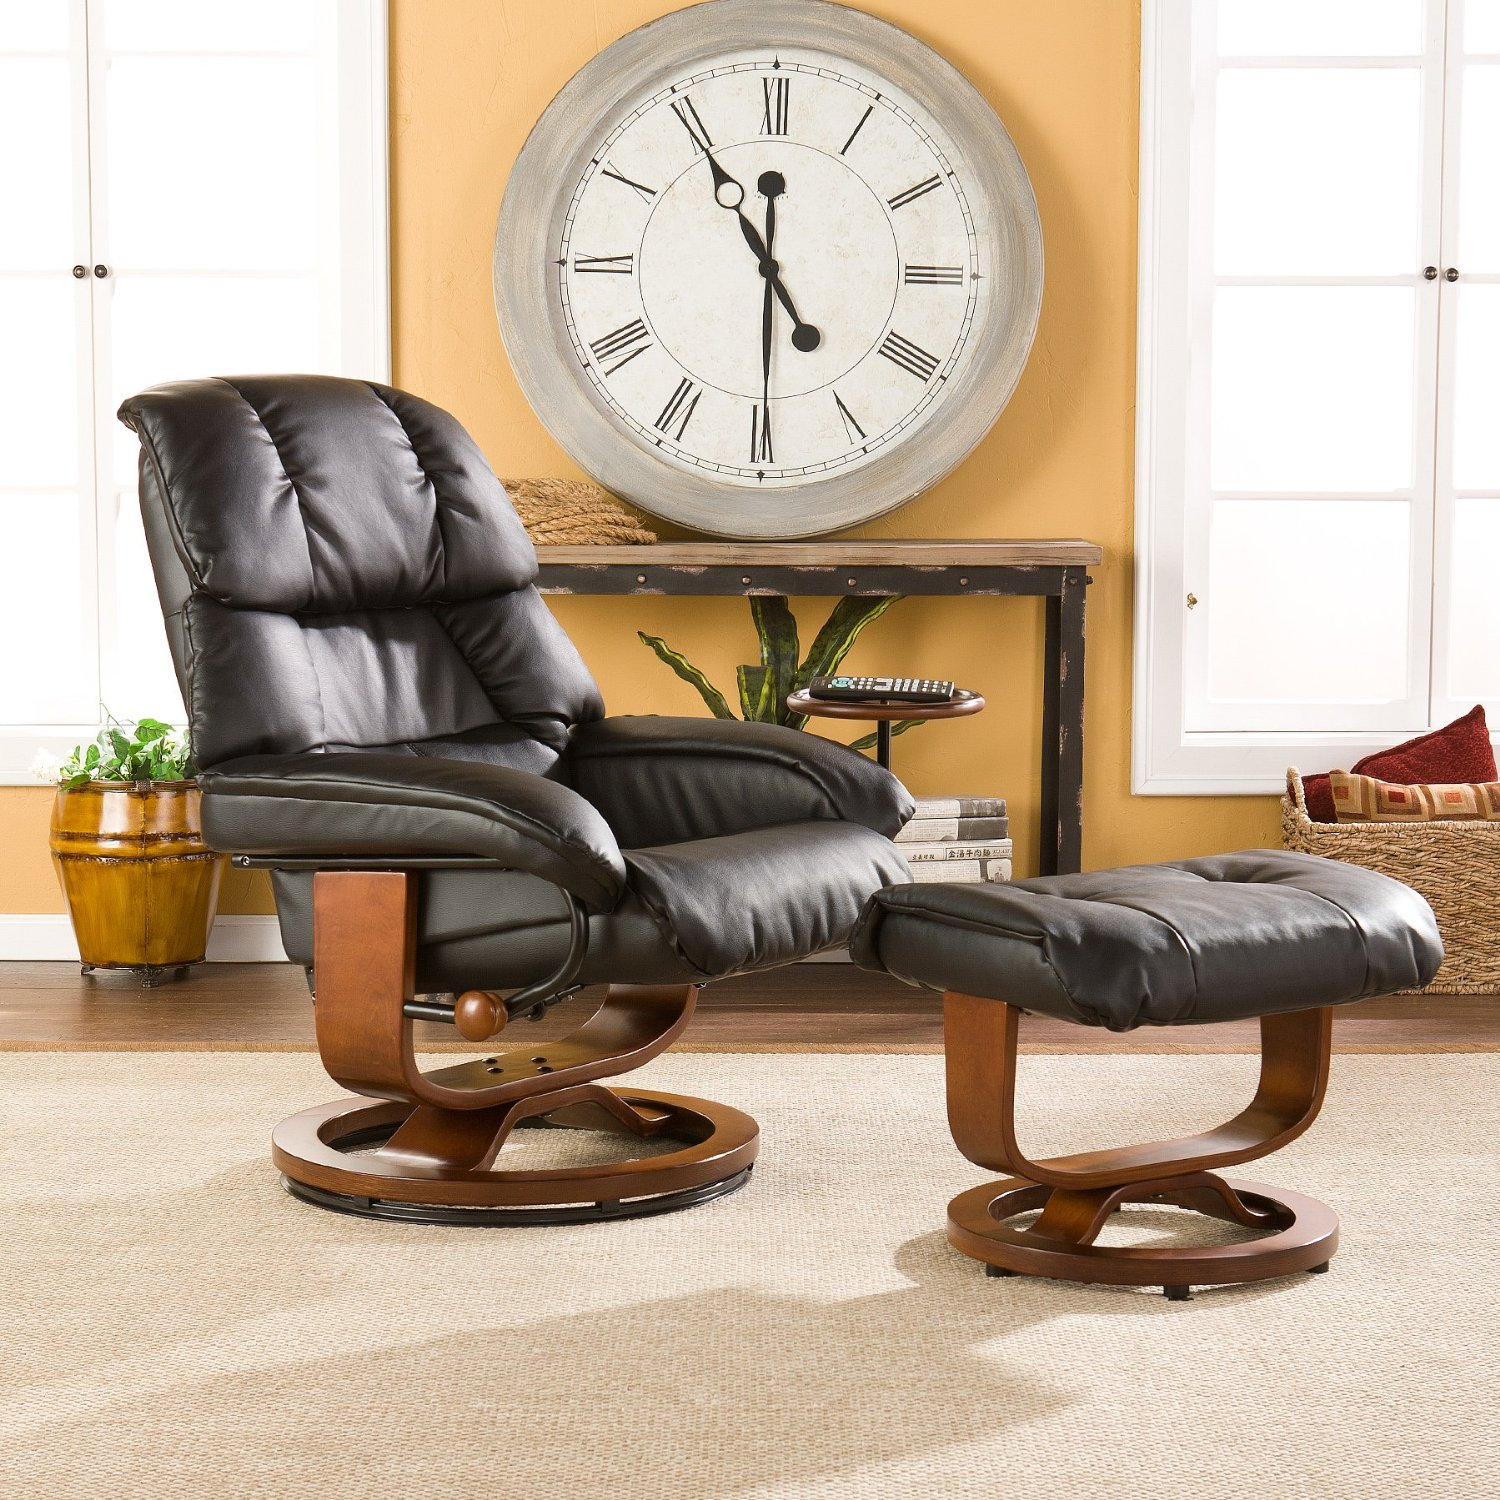 Southern Enterprises High Back Leather Recliner and Ottoman, Black2